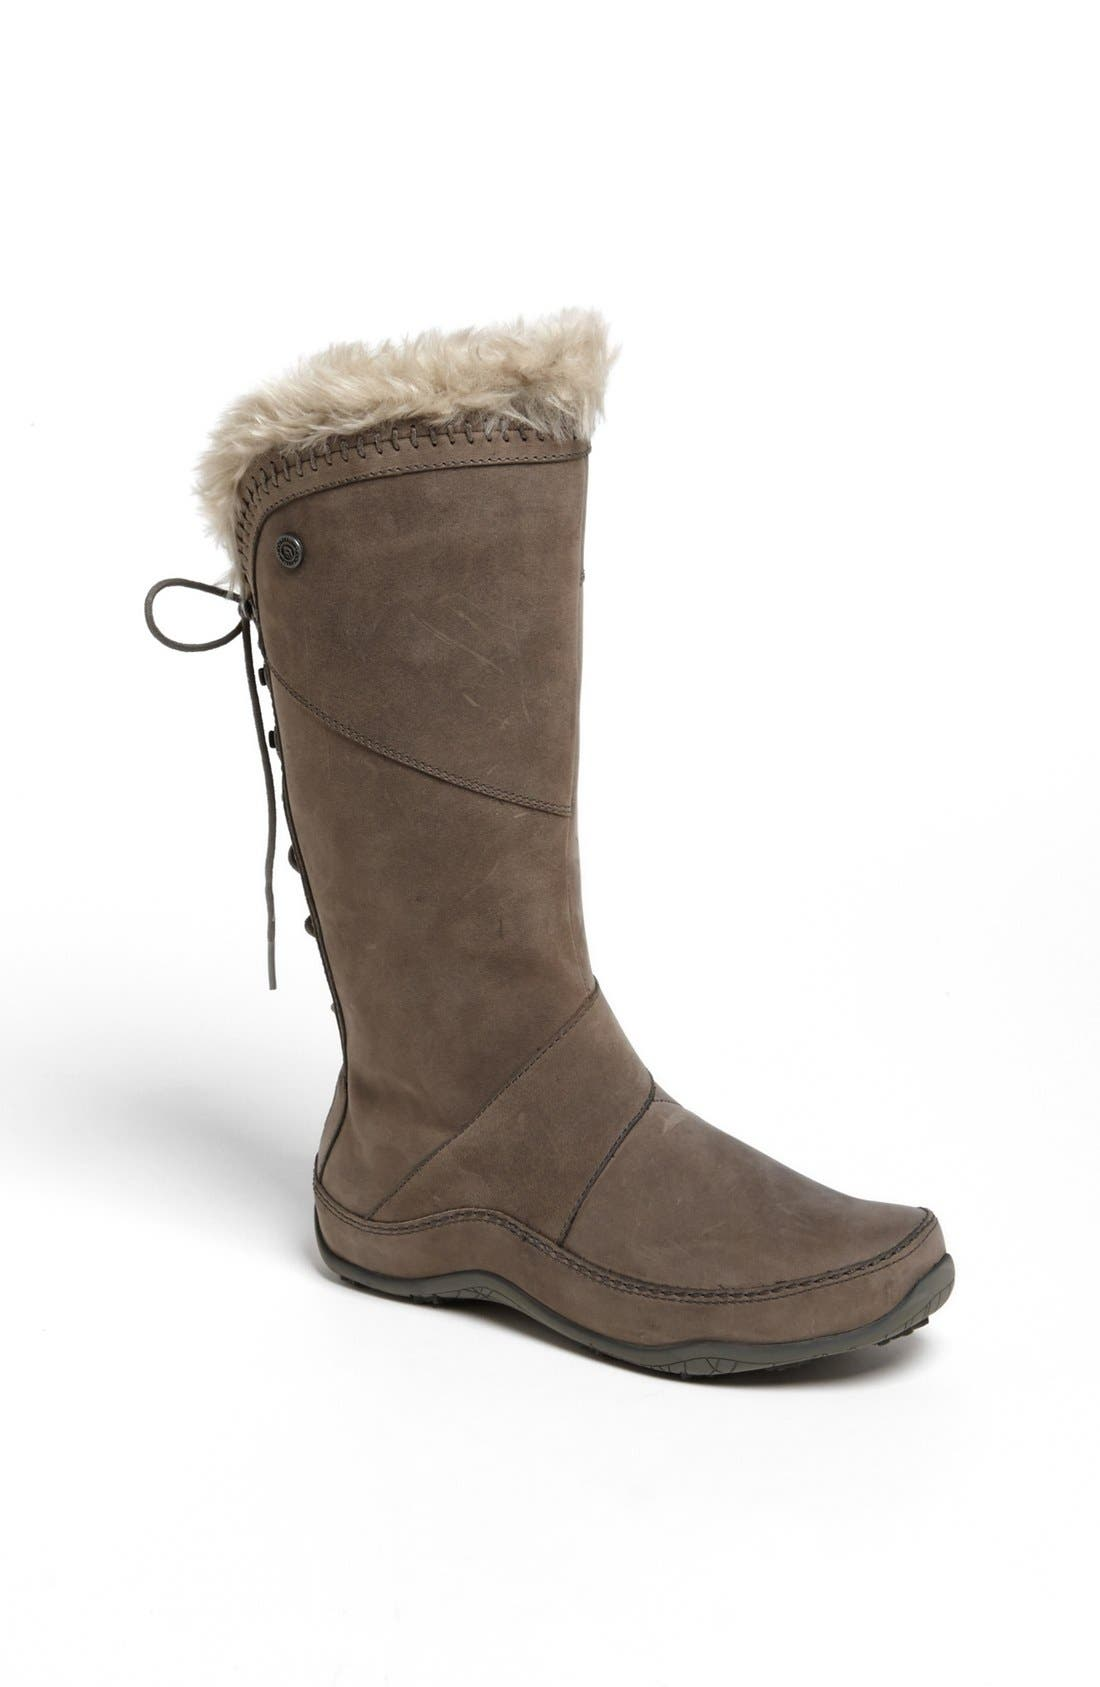 Main Image - The North Face 'Janey II Luxe' Waterproof Boot